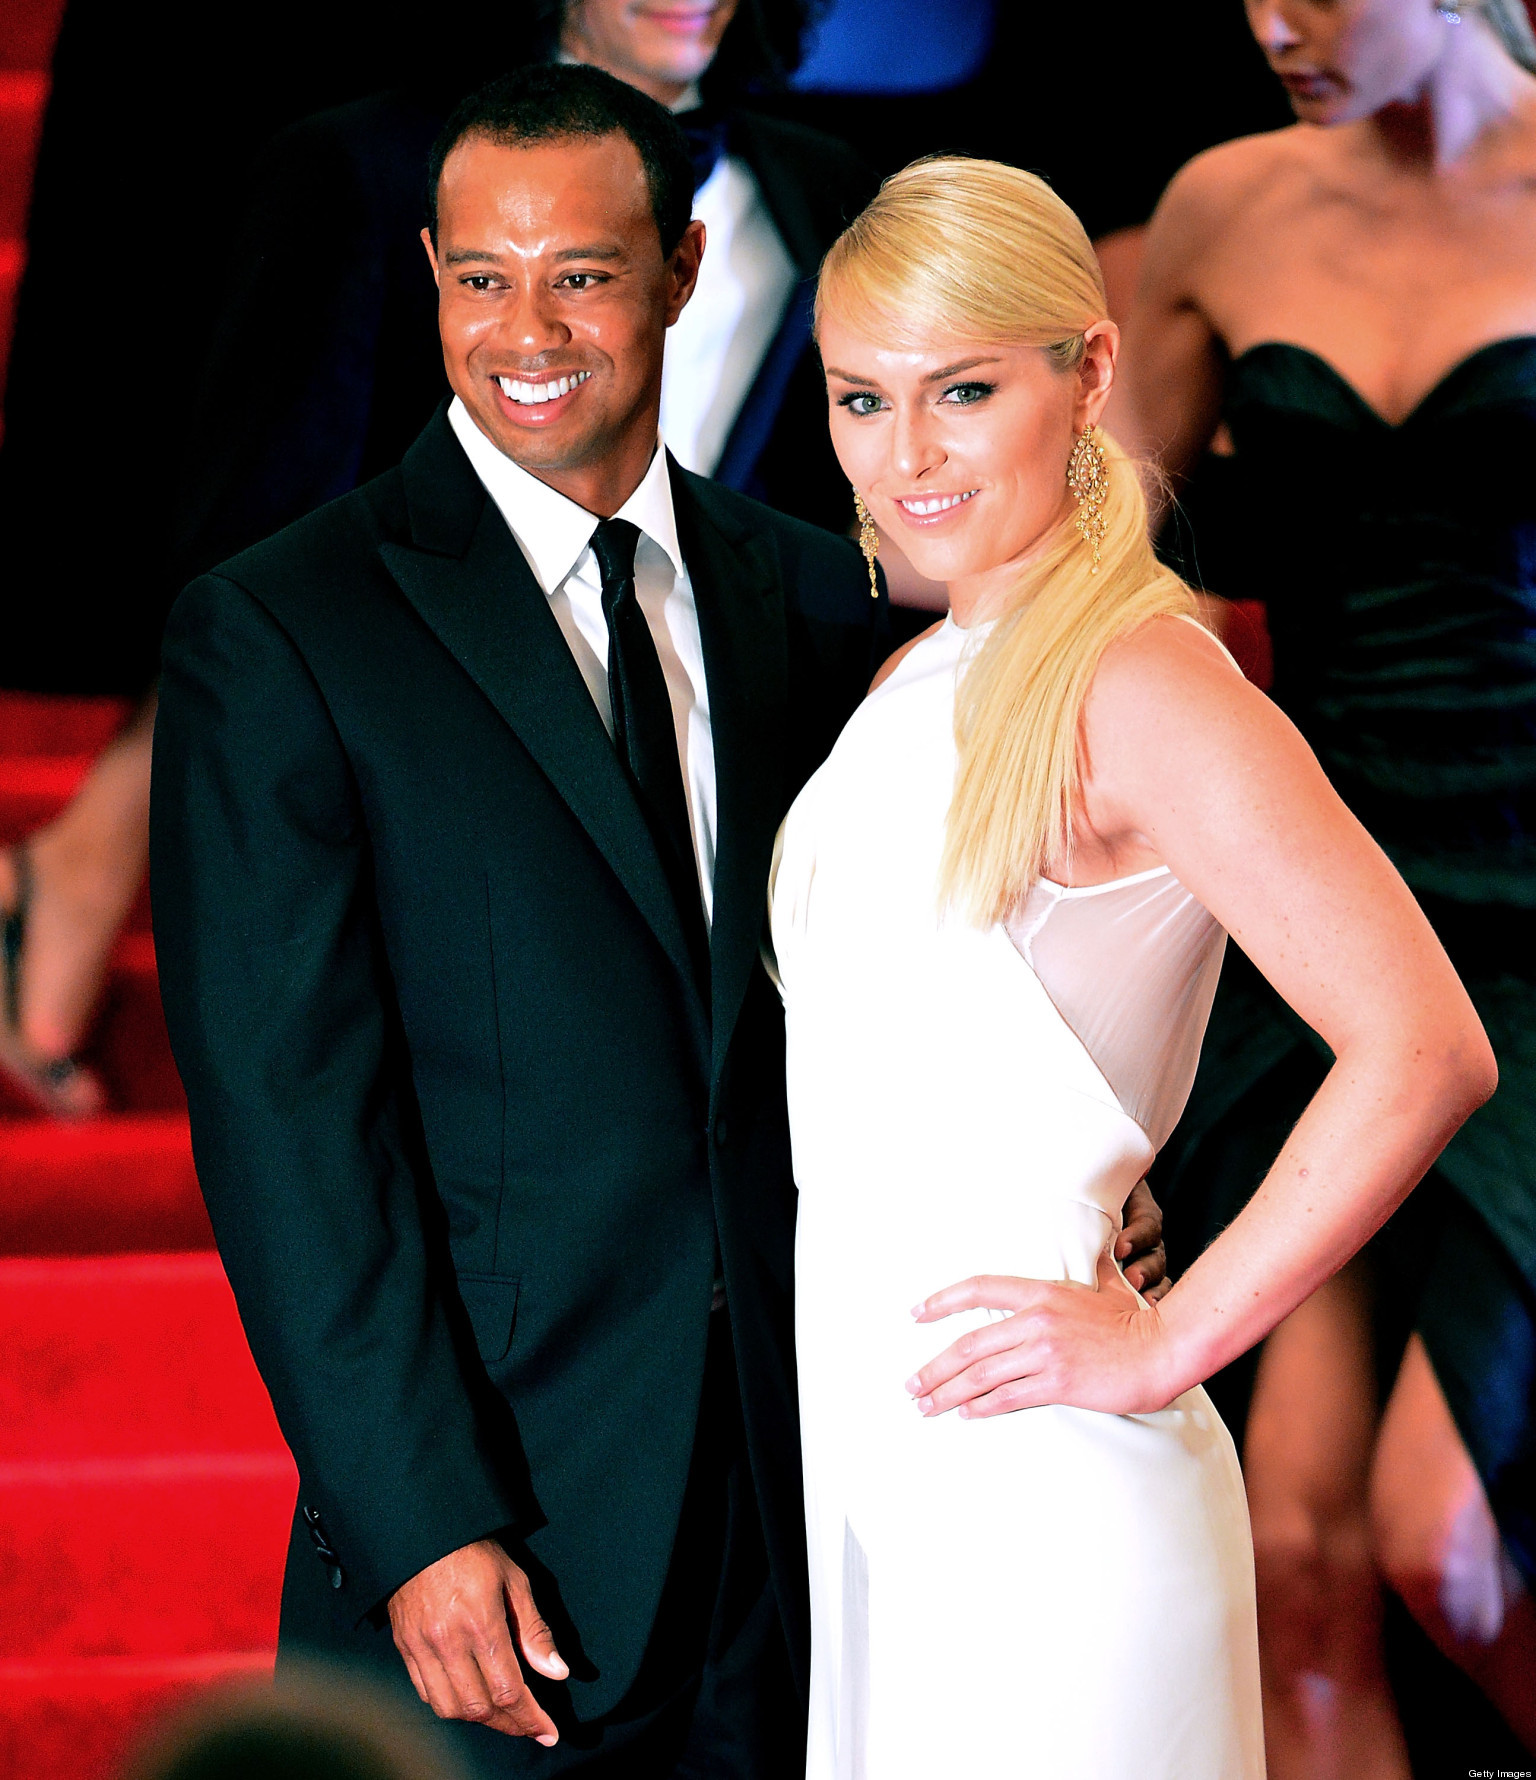 Lindsey Vonn & Tiger Woods Pictures